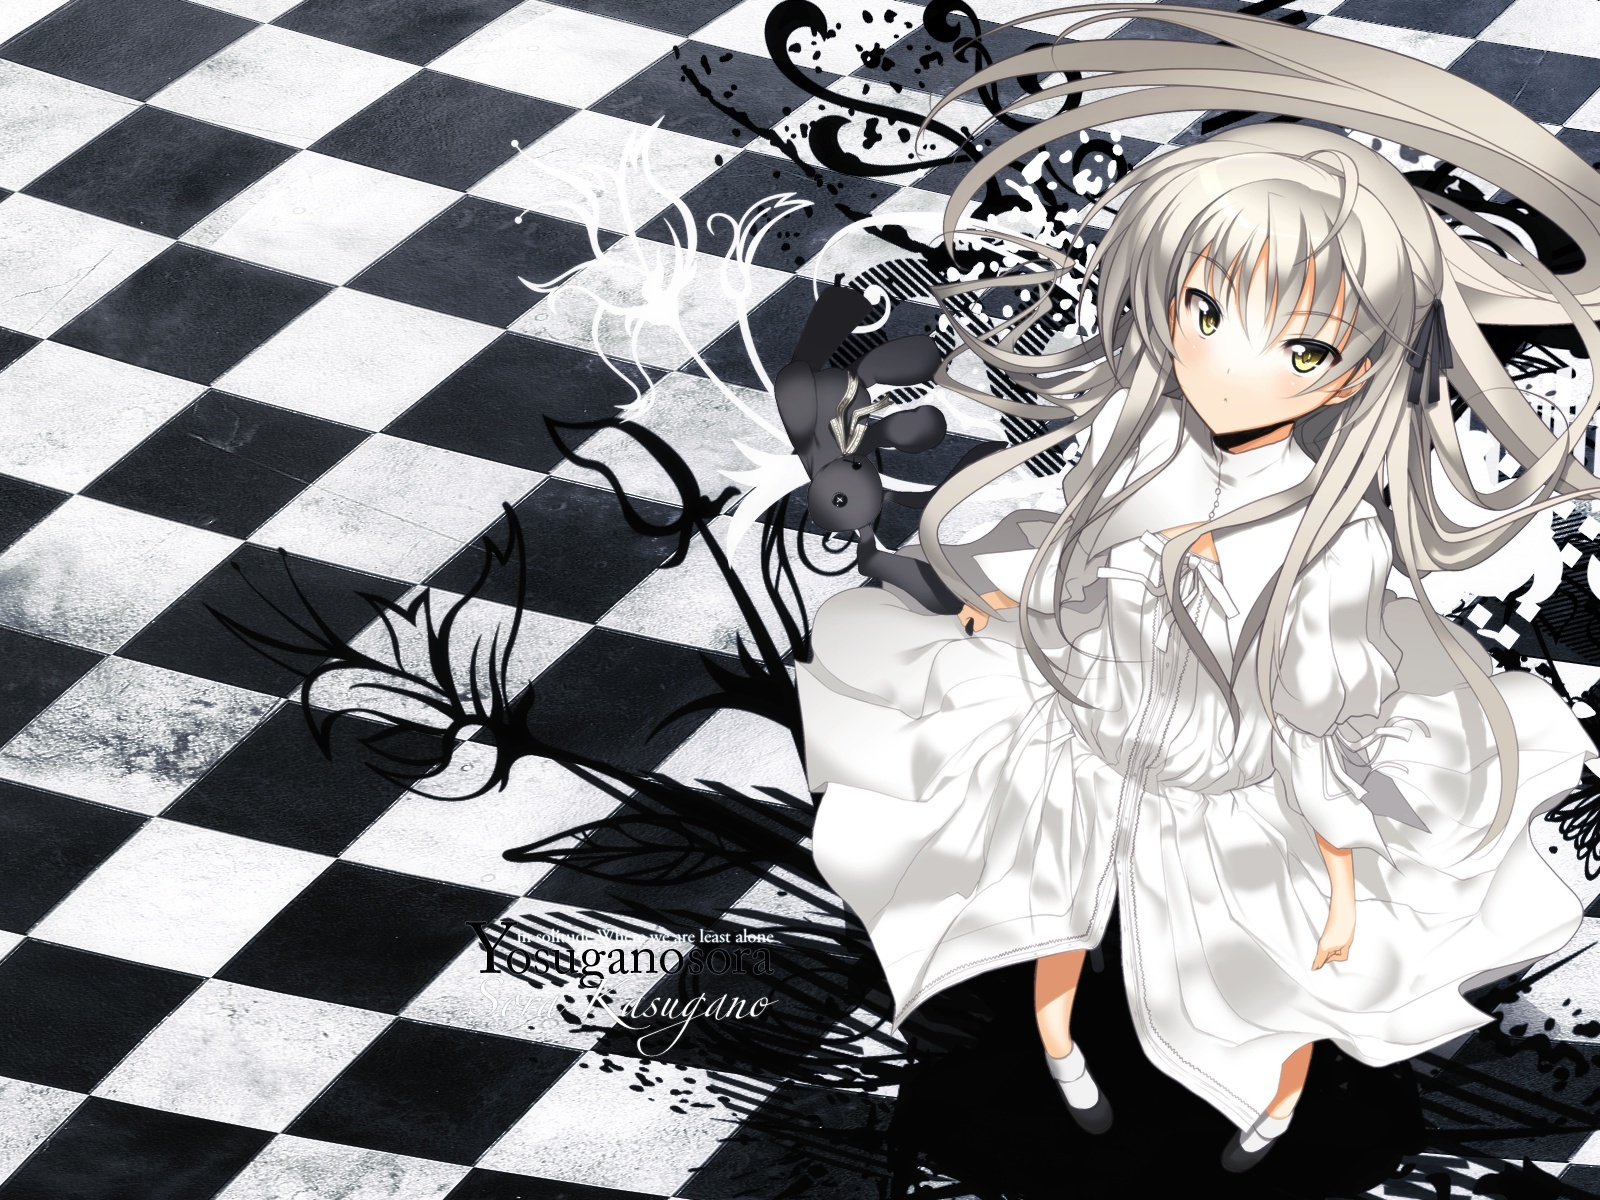 fond d 39 ecran yosuganosora wallpaper. Black Bedroom Furniture Sets. Home Design Ideas